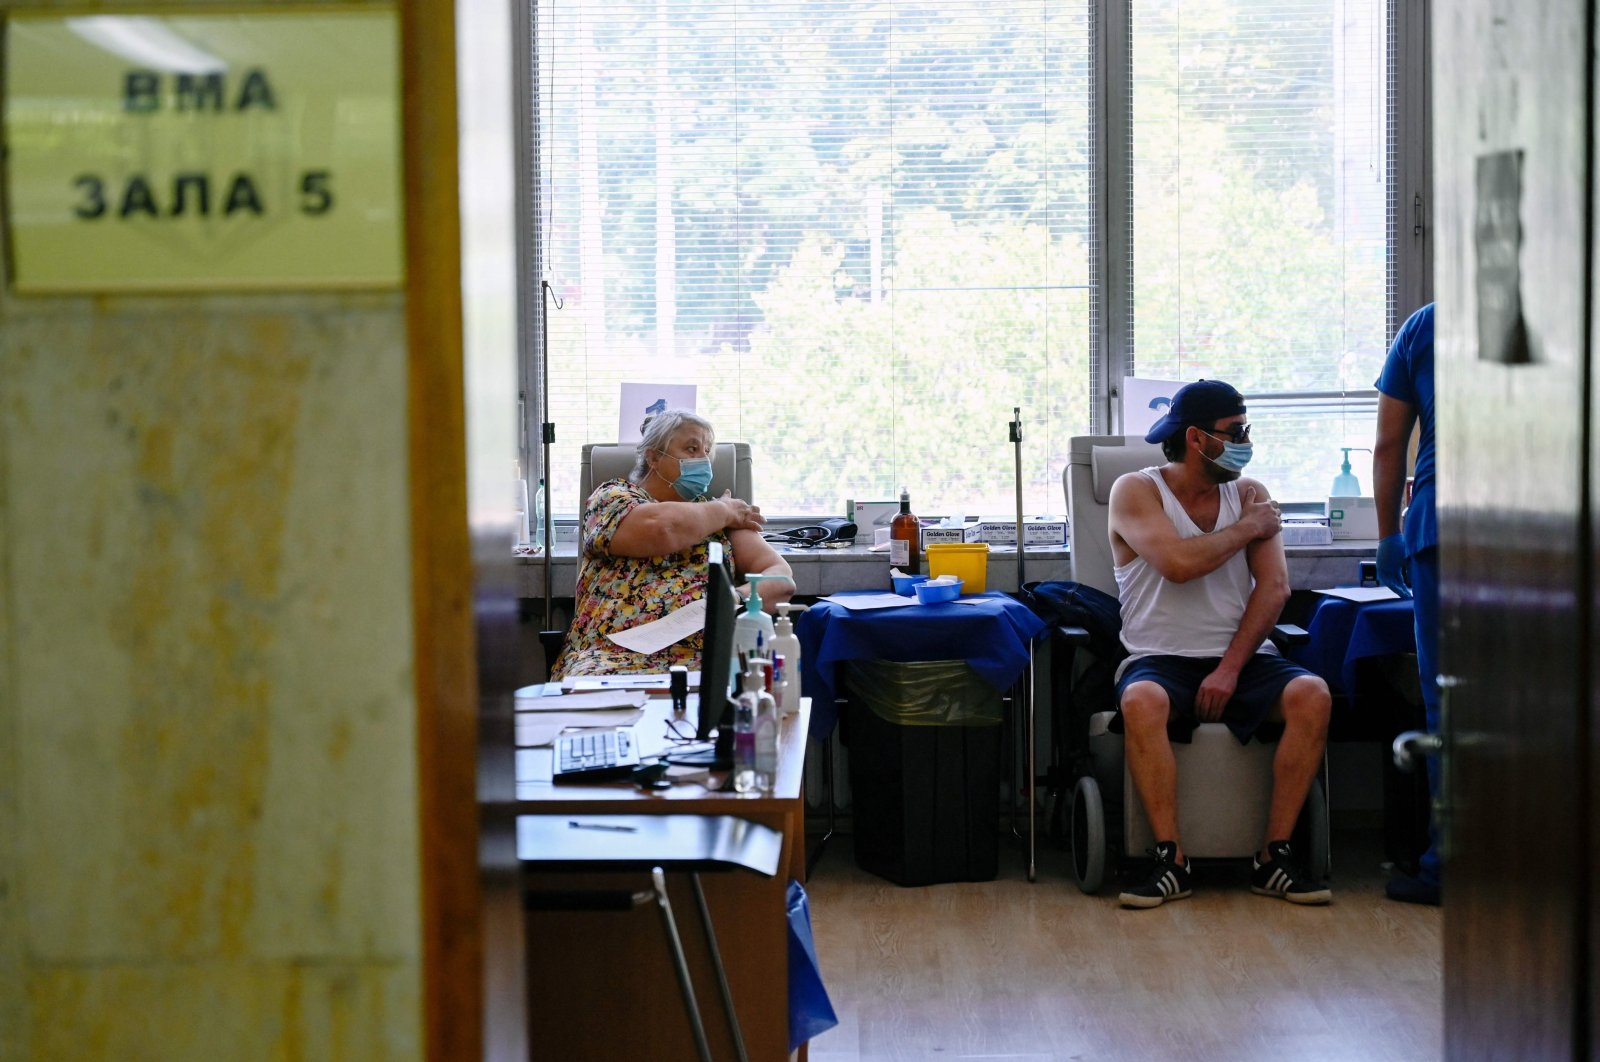 Patients pictured after receiving their dose of a COVID-19 vaccine in Sofia, Bulgaria, Aug. 6, 2021. (AFP Photo)